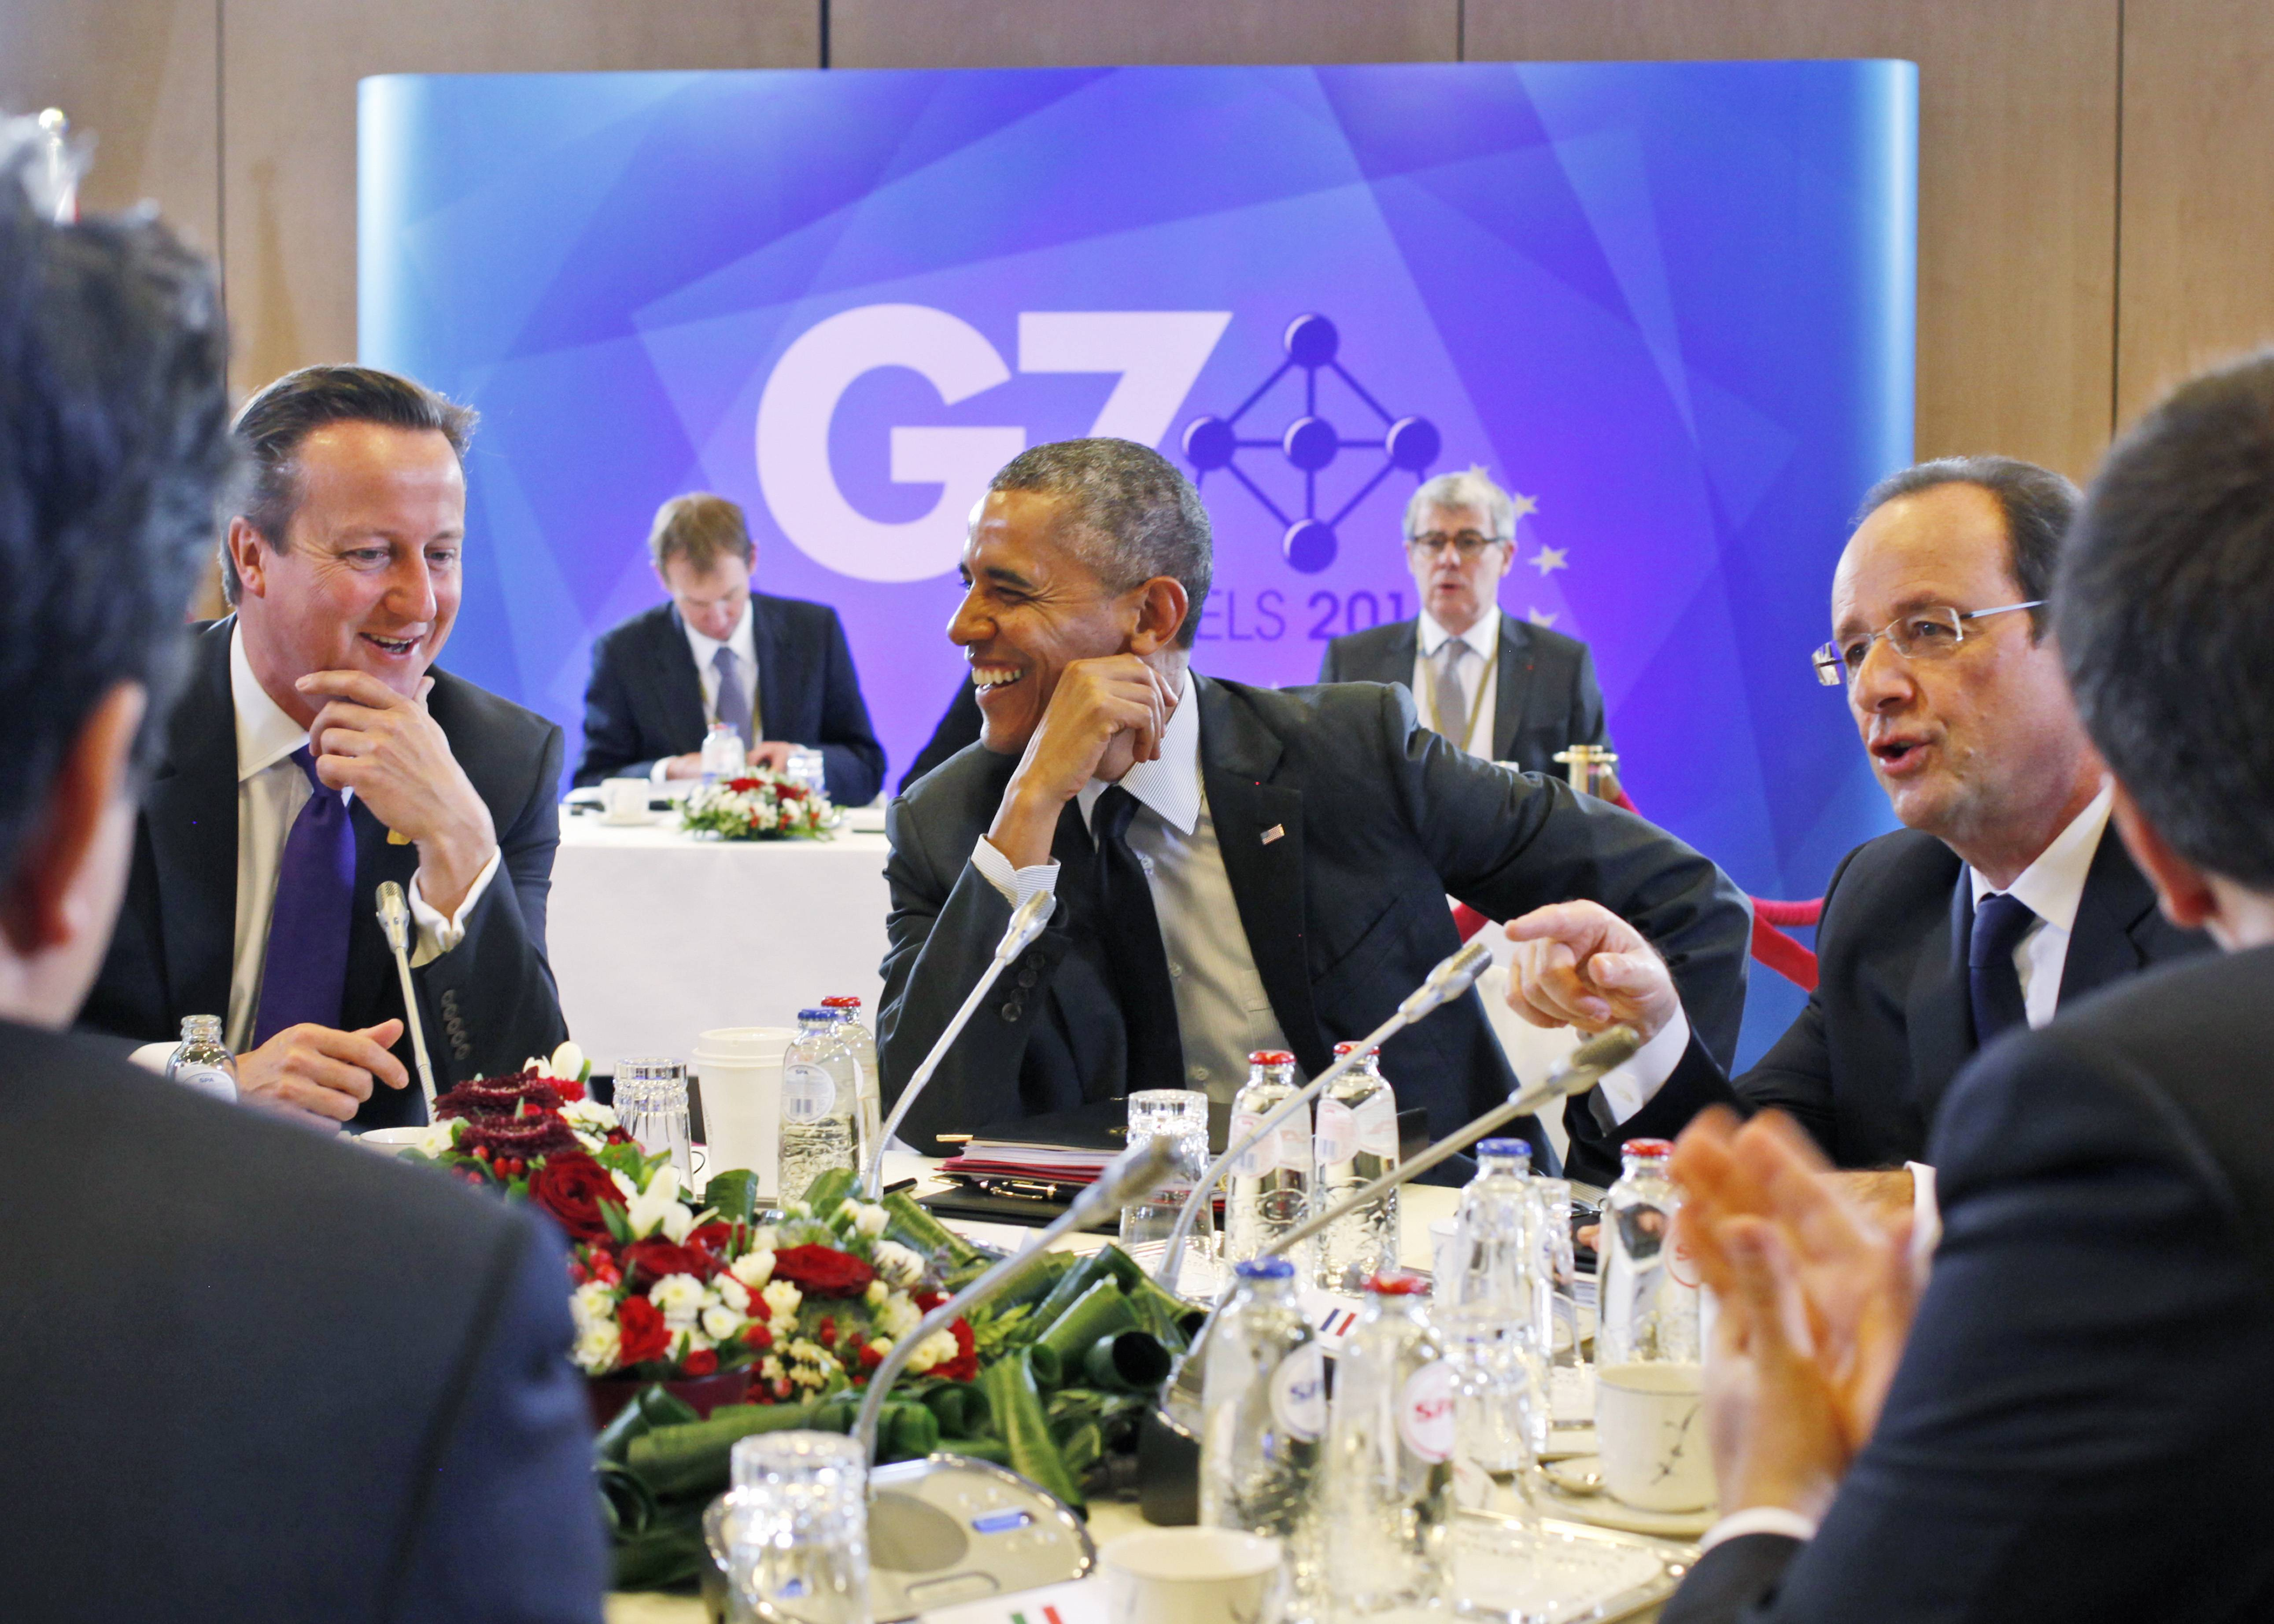 President Barack Obama jokes with British Prime Minister David Cameron, left, and French President Francois Hollande, right, during a G7 session in Brussels, Belgium, Thursday.